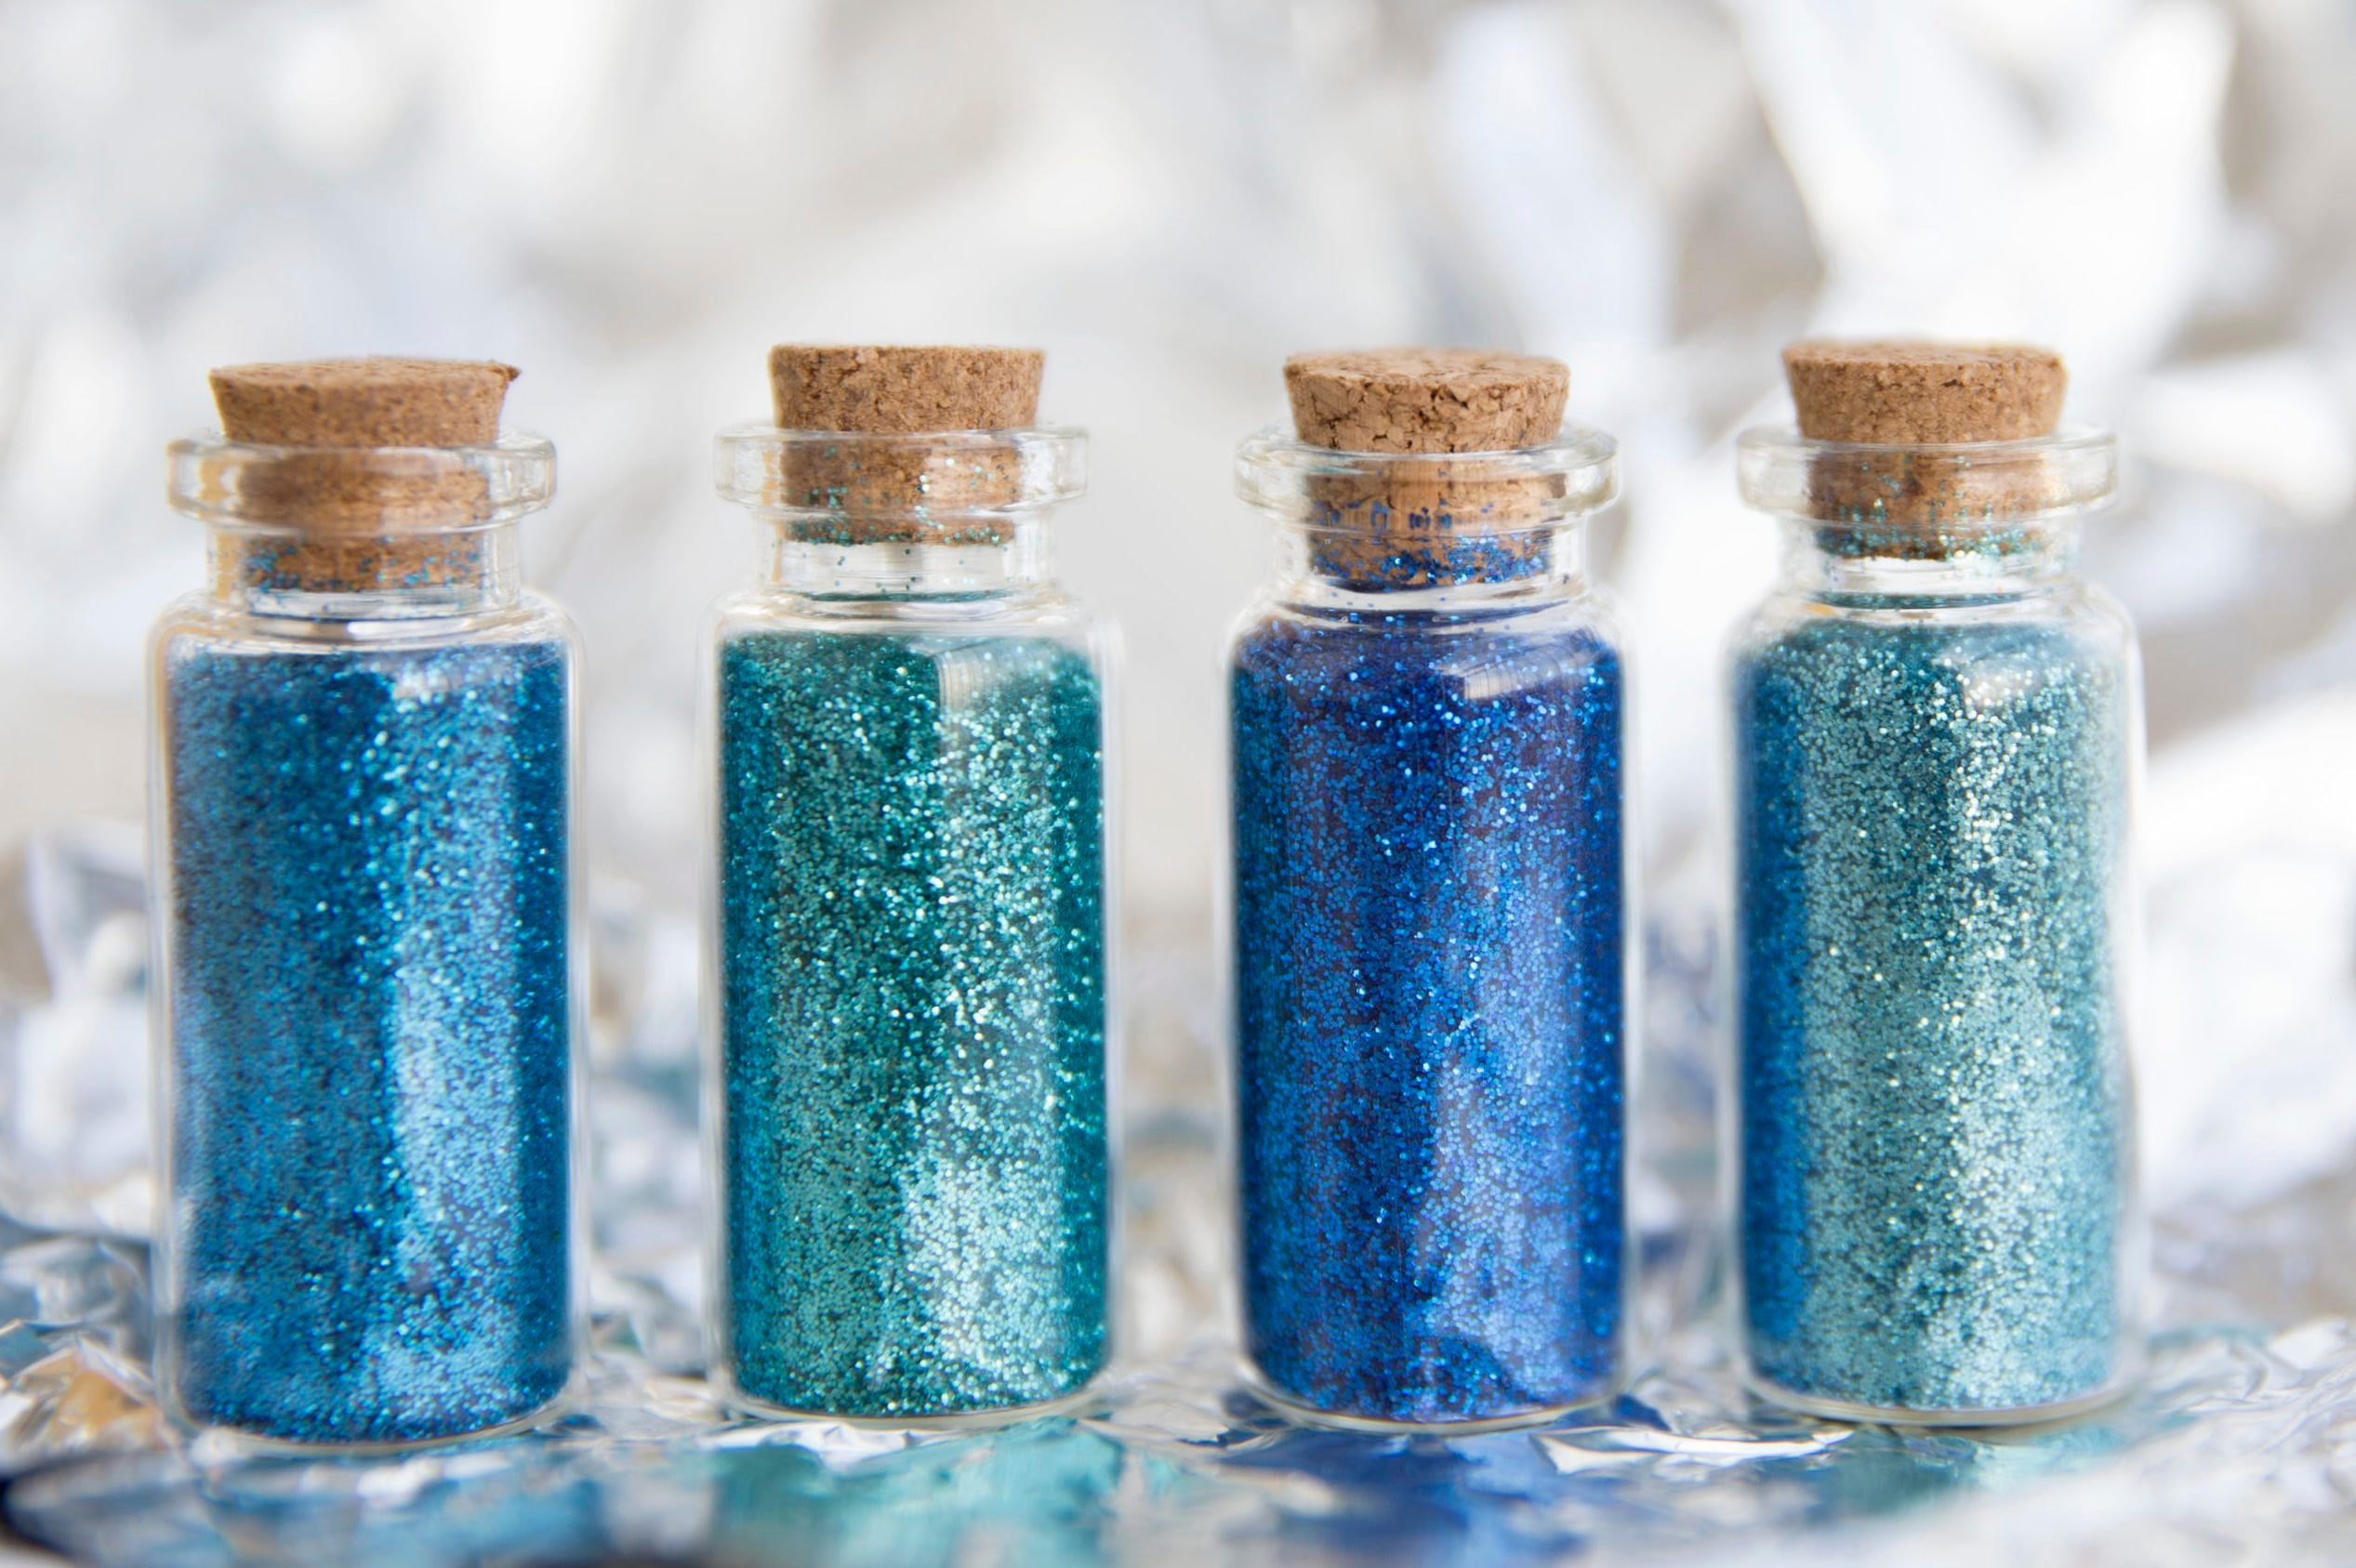 Close-Up Of Glitter Bottles On Table